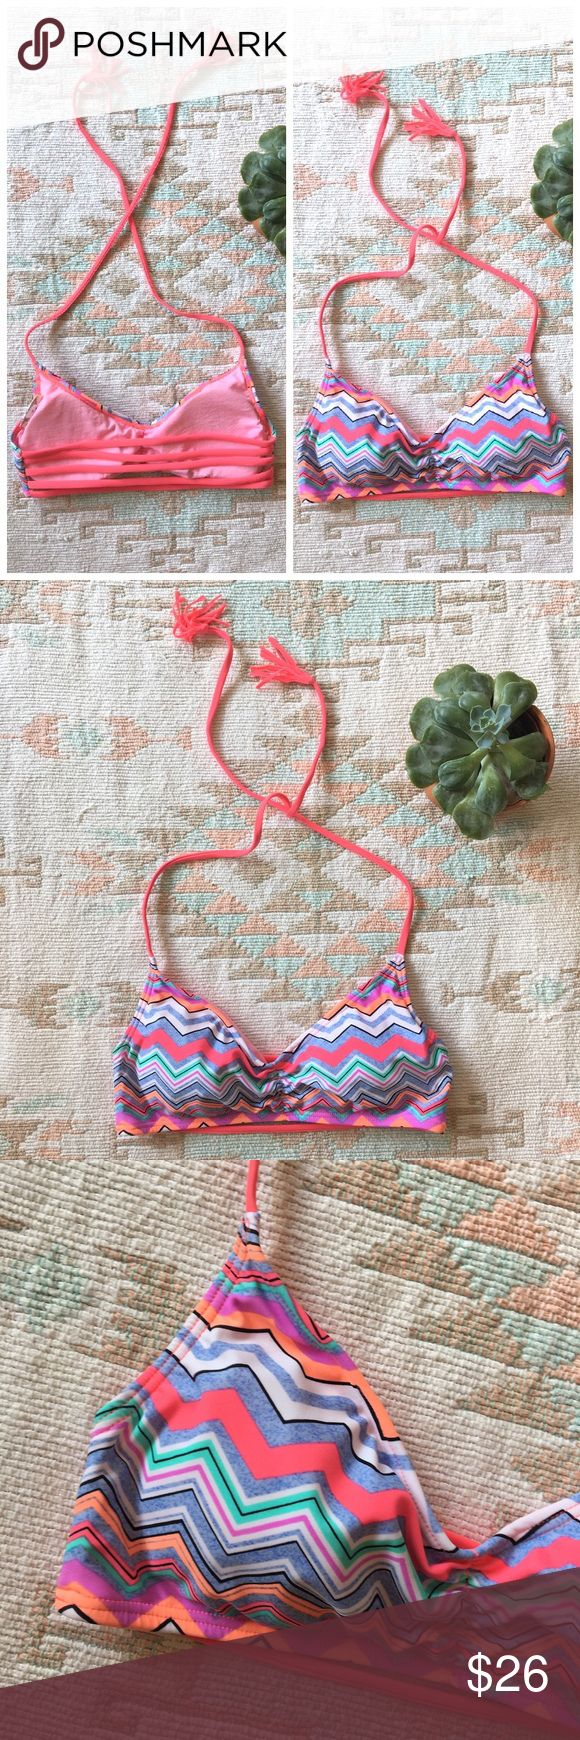 Strappy Chevron Bikini Top, Tropical Swim Suit Cute bikini top! Strappy back. Halter straps that tie around the neck. Women's Large. Padding (not push-up) in each cup. Colorful chevron pattern! Pink, blue, black, white, orange, purple, aqua. Straps are bright pink. Like new condition! Swim Bikinis